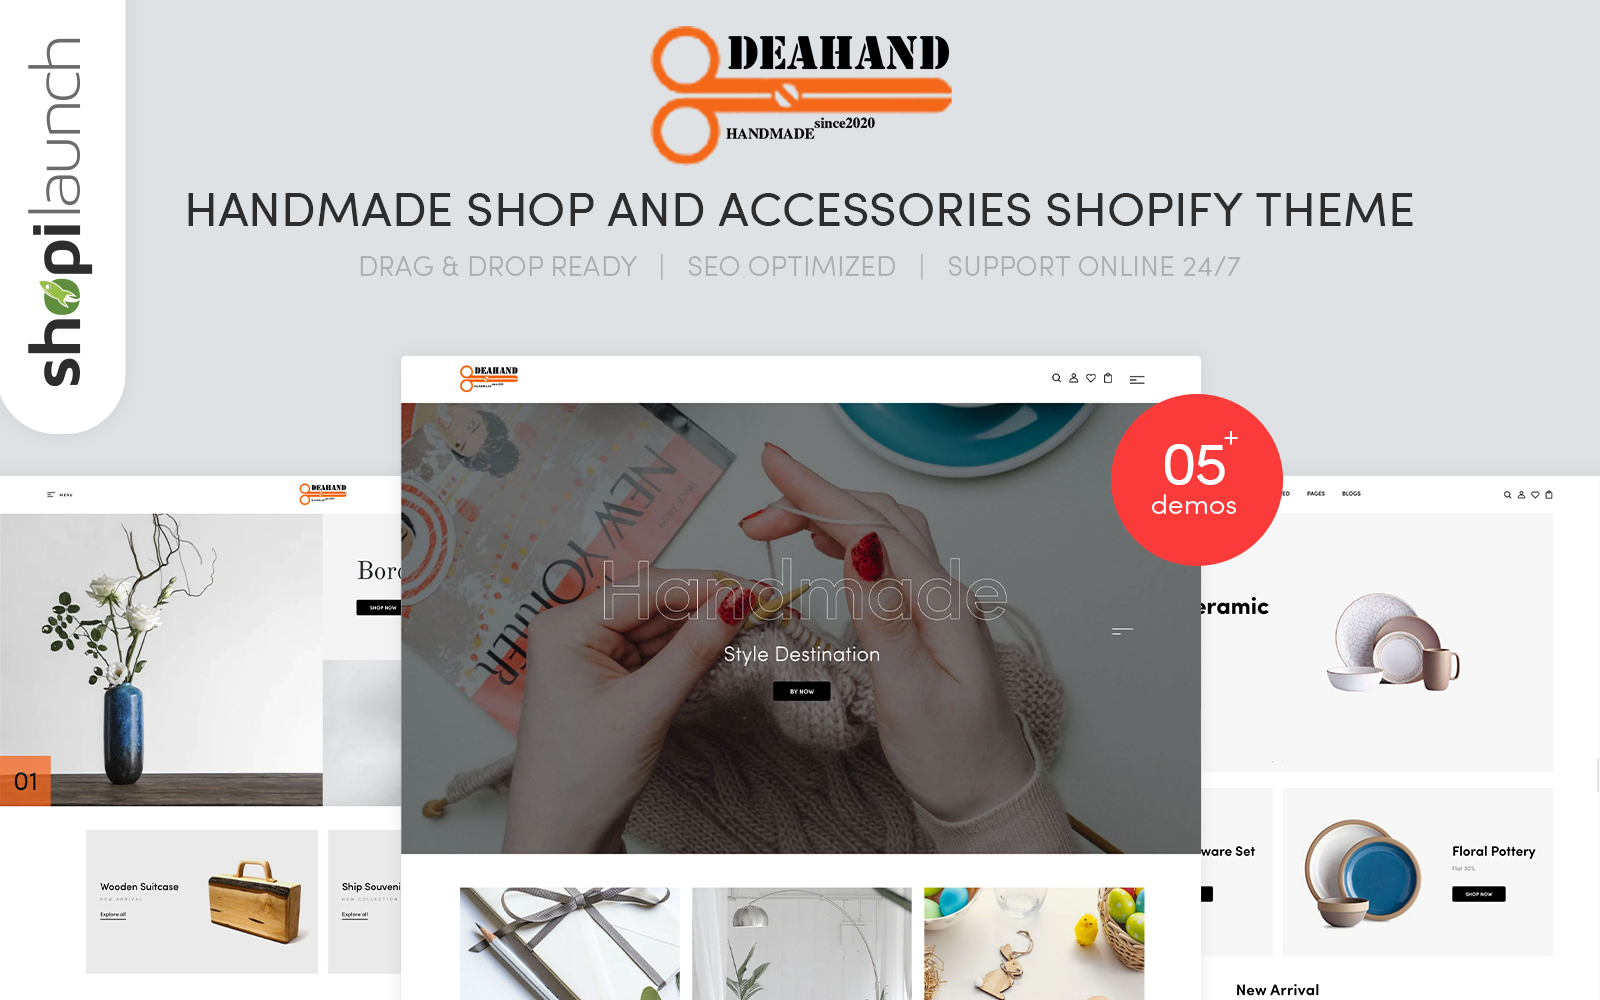 Deahand - Handmade Shop And Accessories Shopify Theme